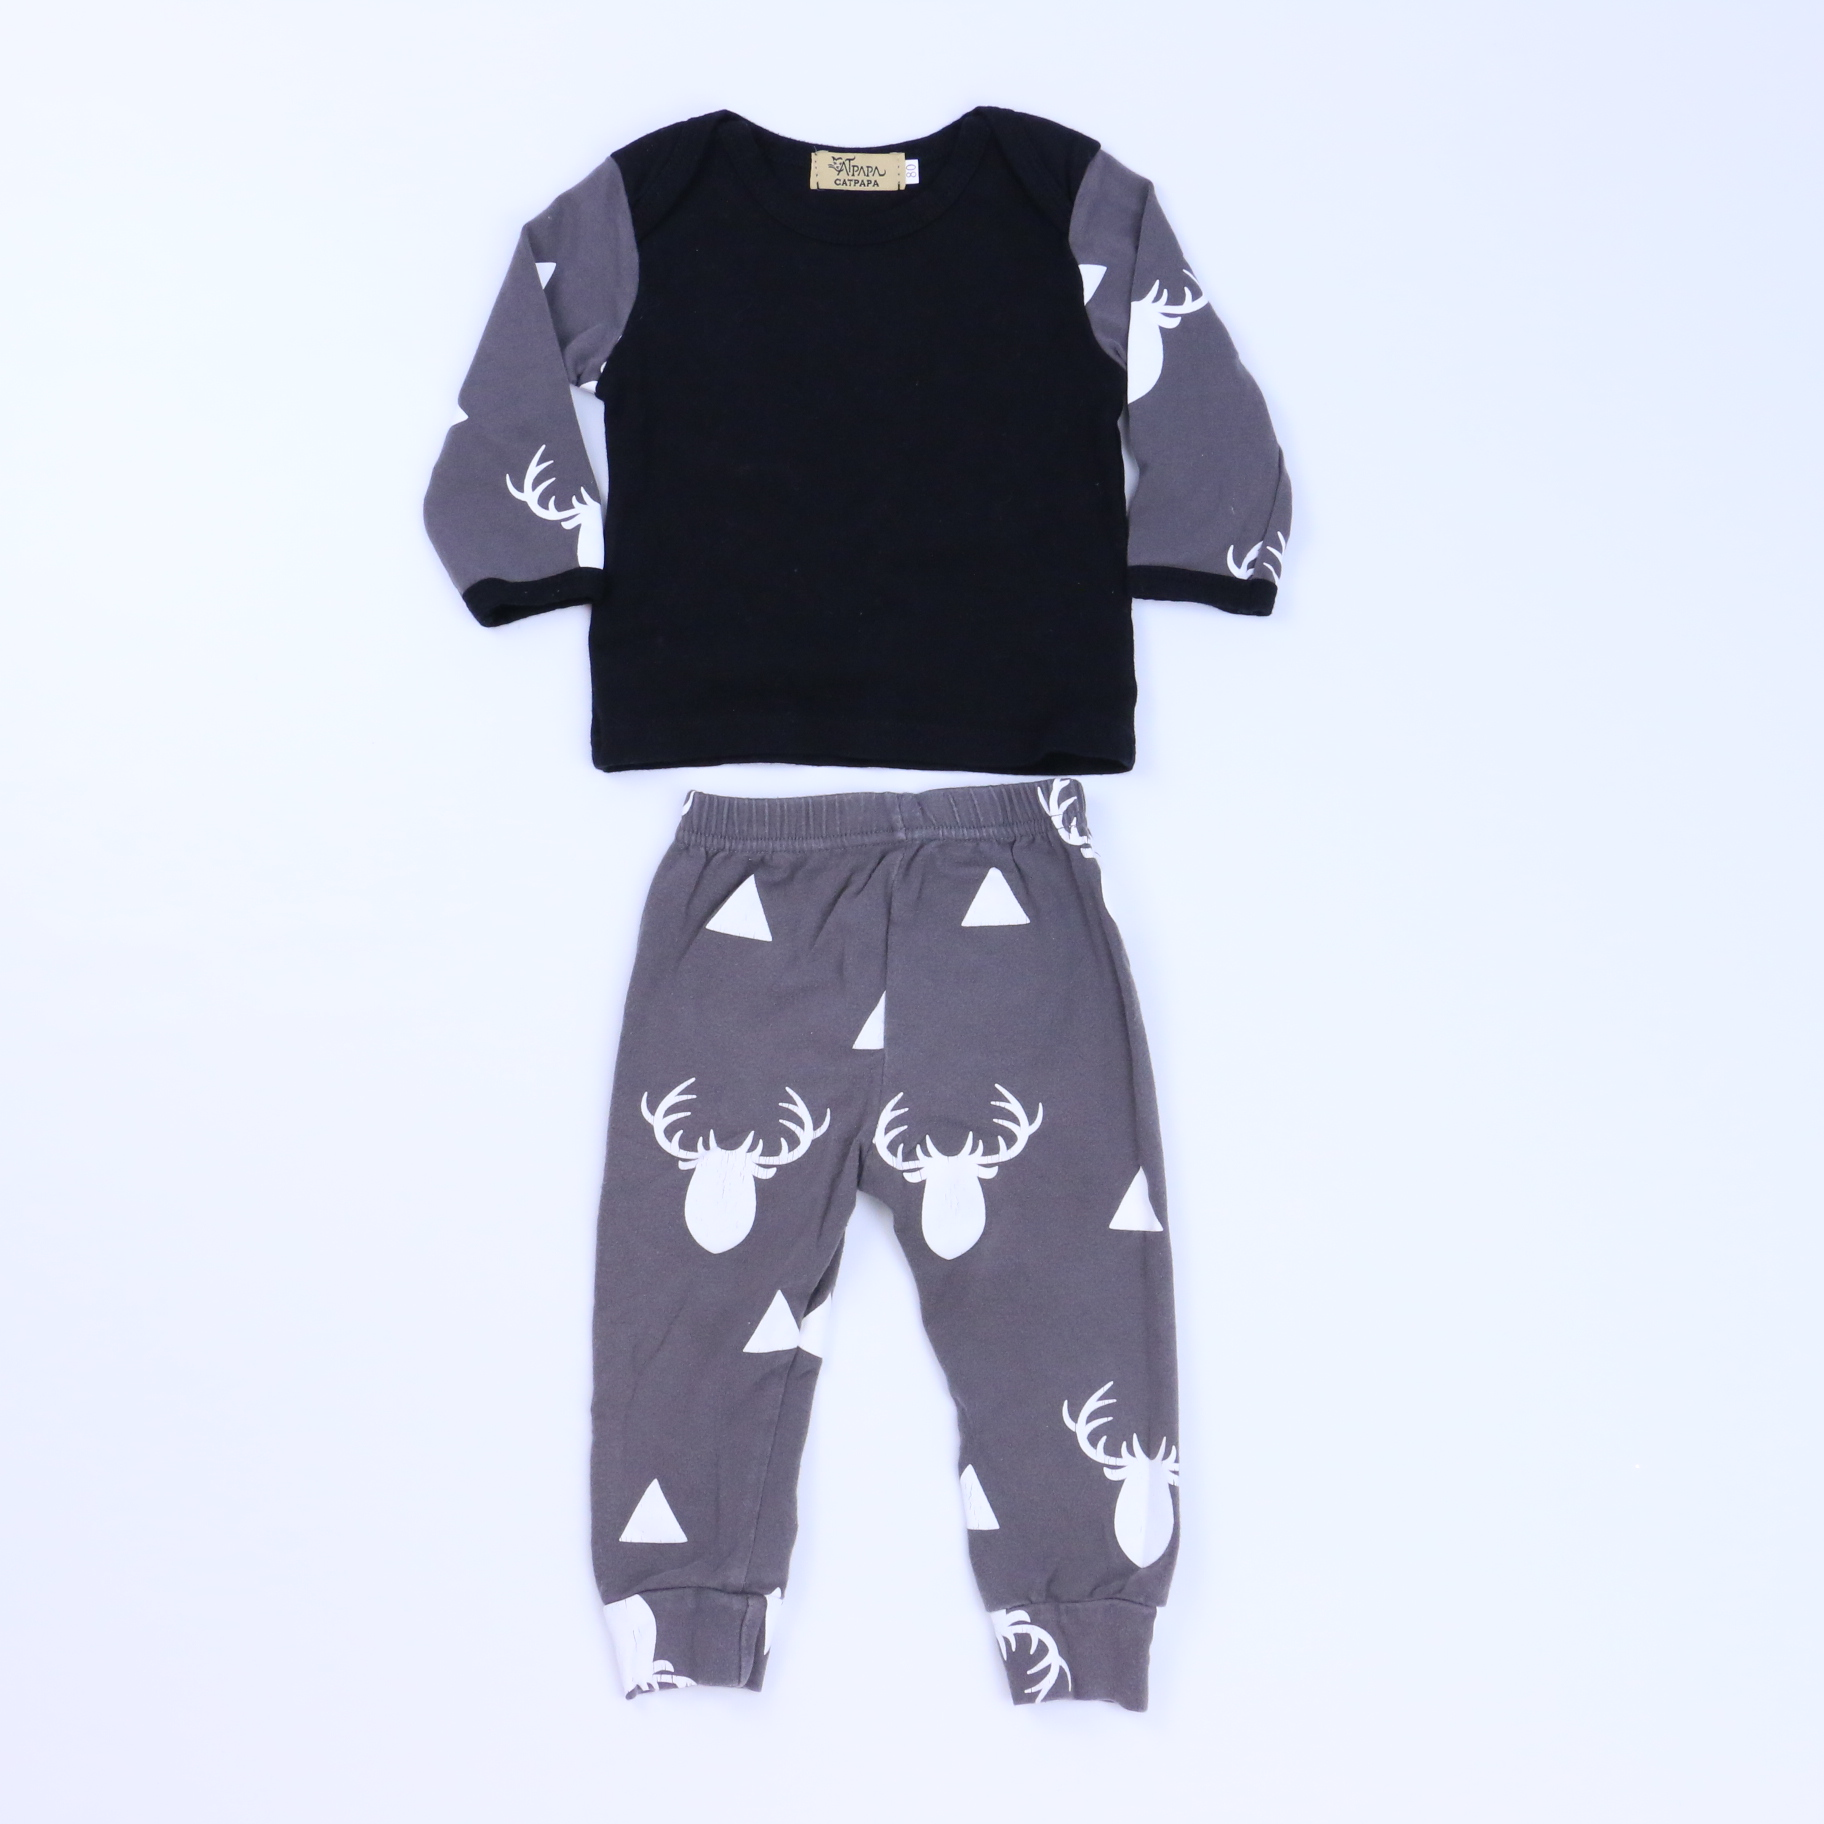 a09675455 2-pieces Apparel Sets size: *6-9 Months - The Swoondle Society